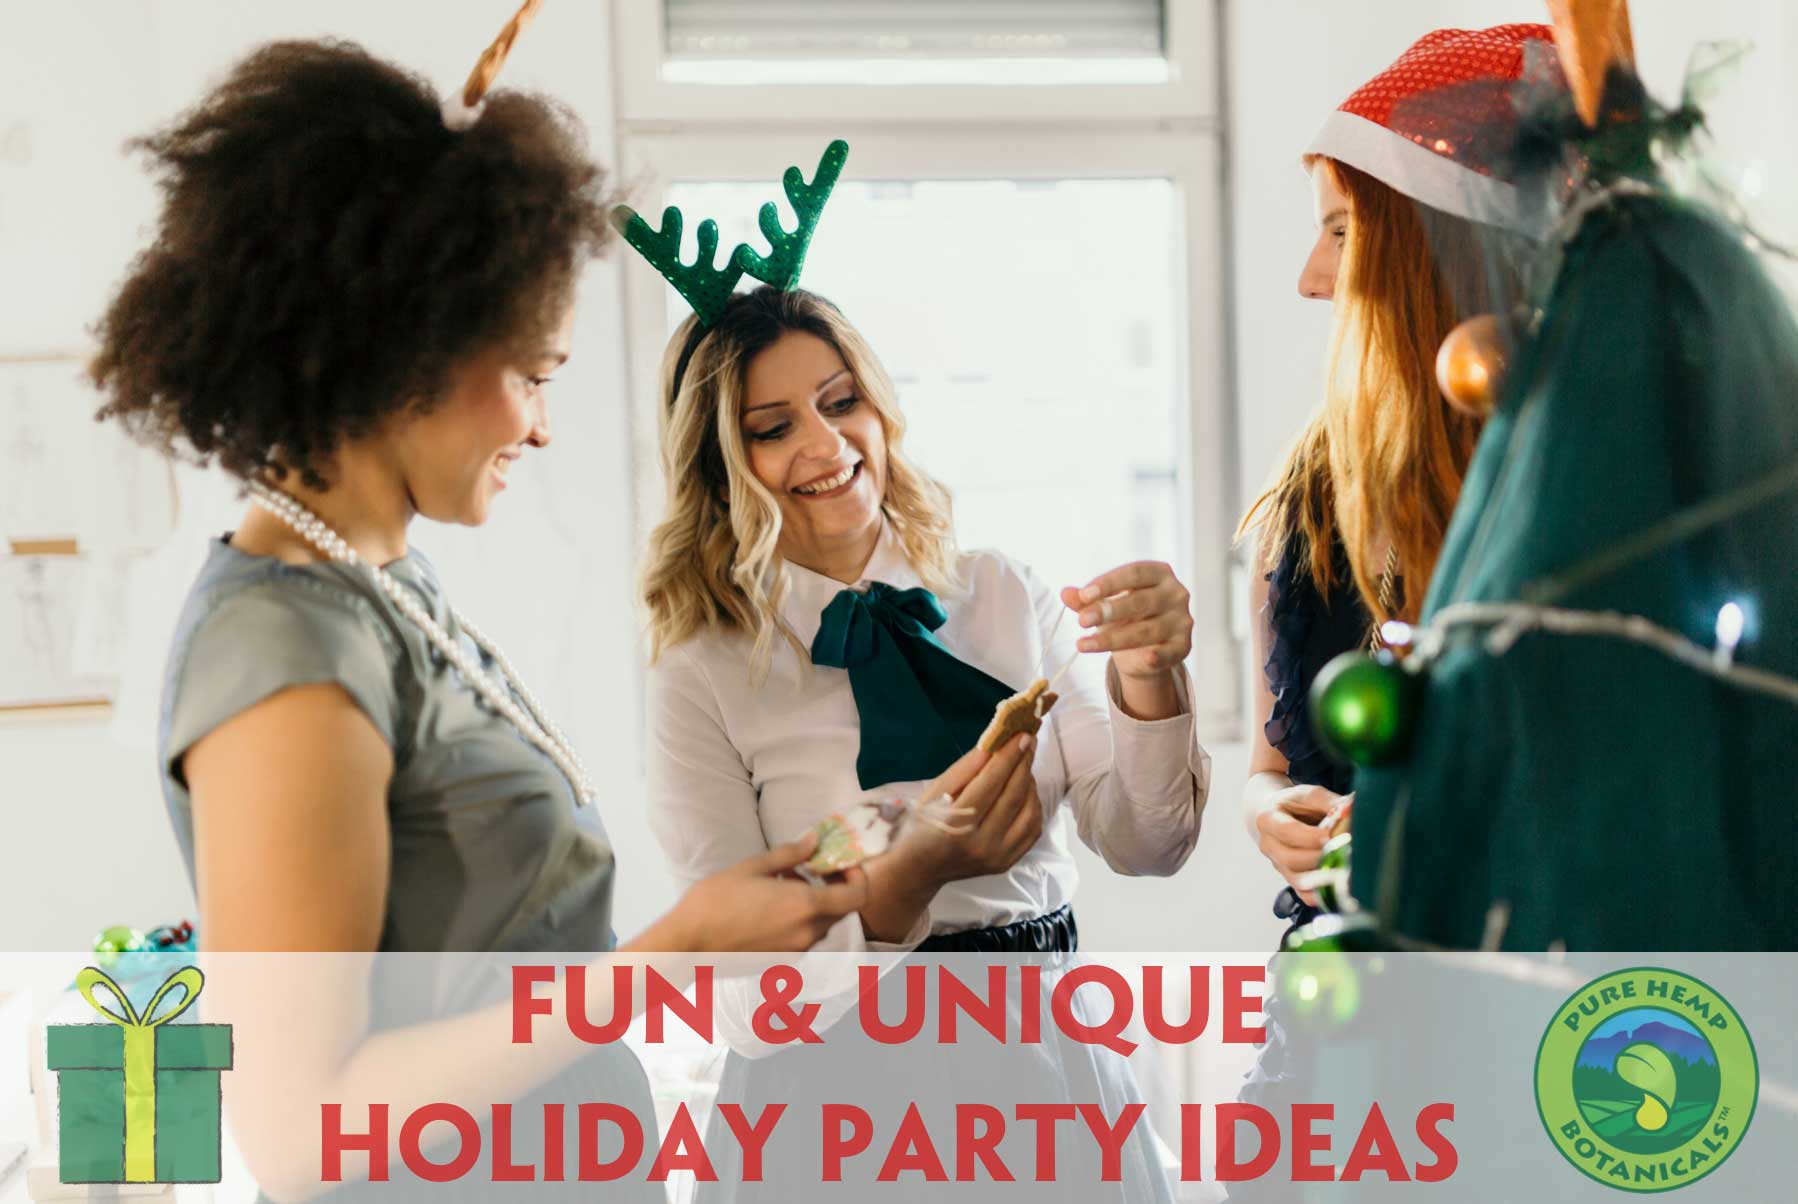 Fun & Unique Holiday Party Ideas!